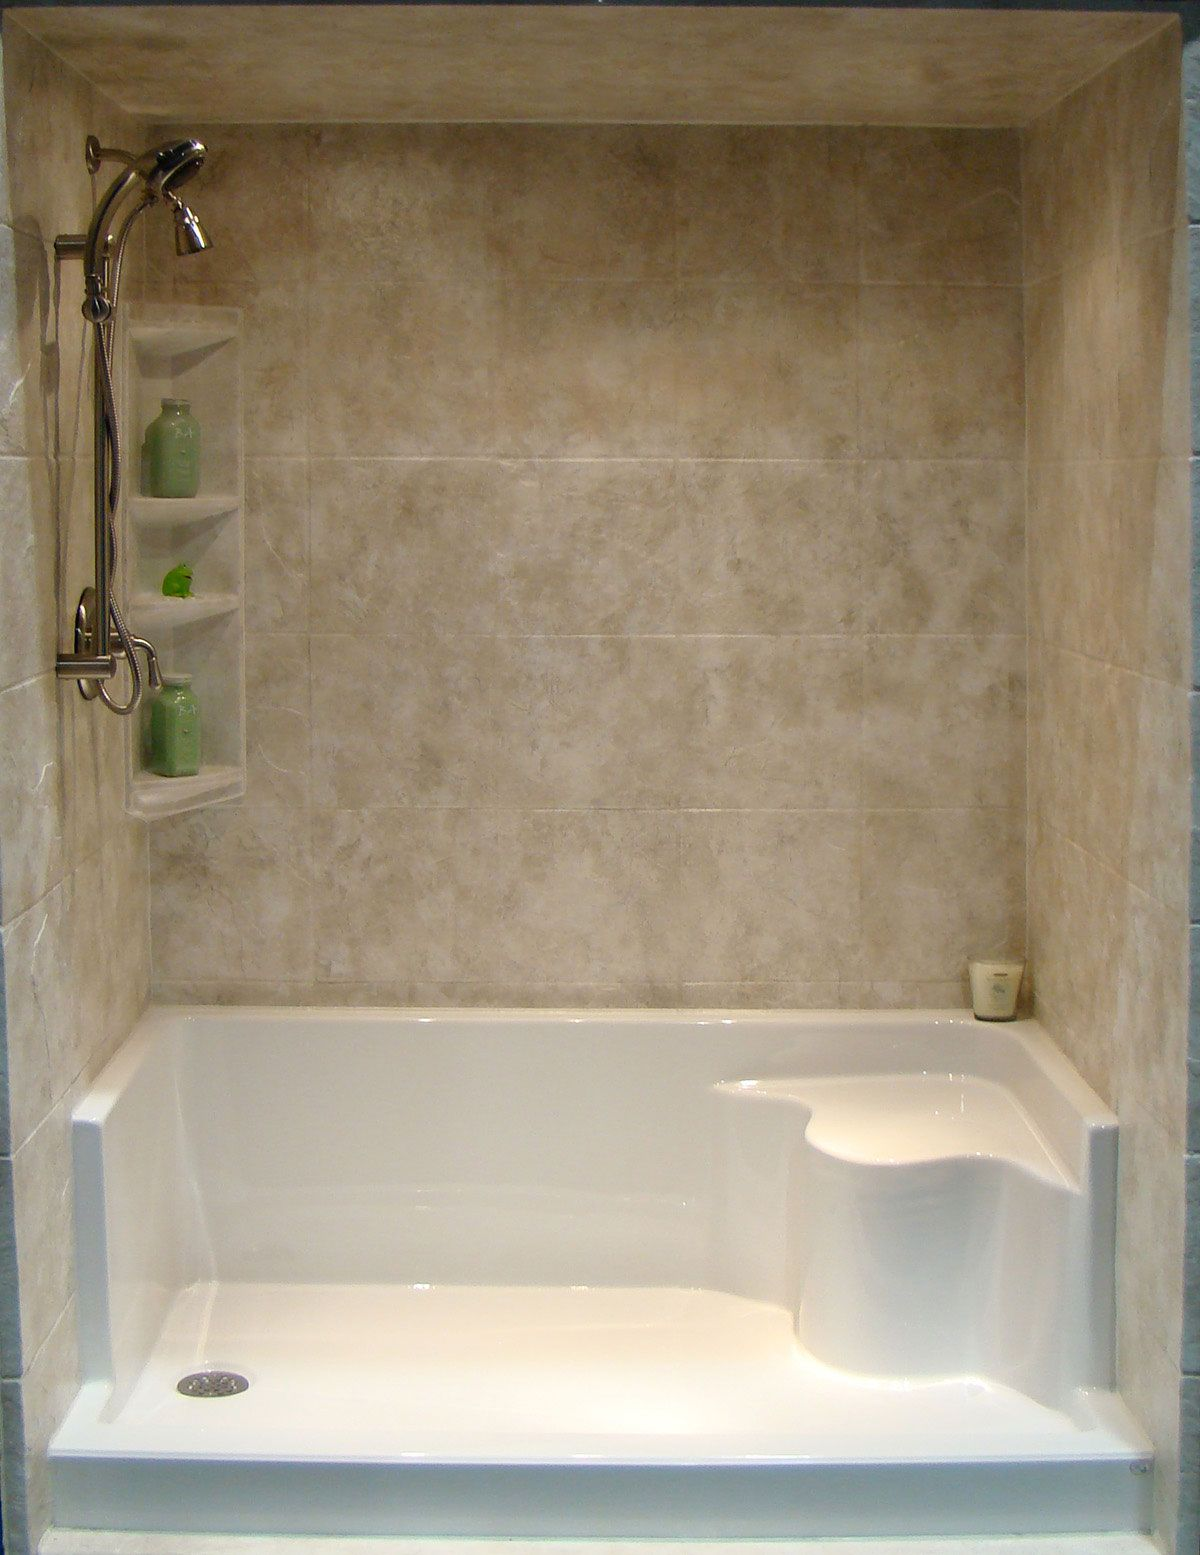 bed remodel kit tub shower conversions kits onyx conversion to bathroom and cost for bathtub convert image collection